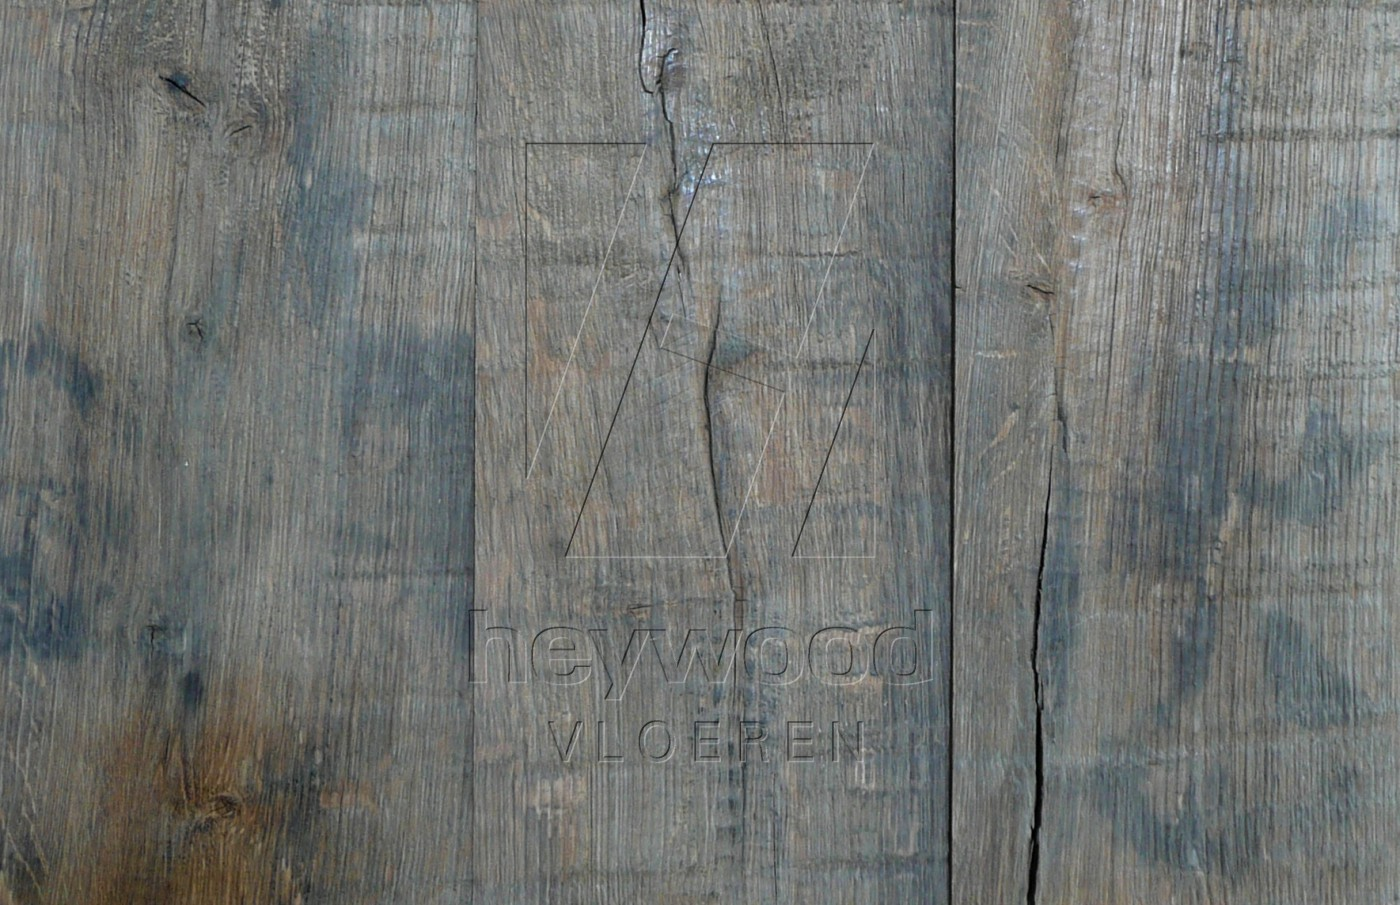 Bordeaux (some close-up reference boards) in Plank OUTSIDES (authentic textured surface) of Old Reclaimed Wood